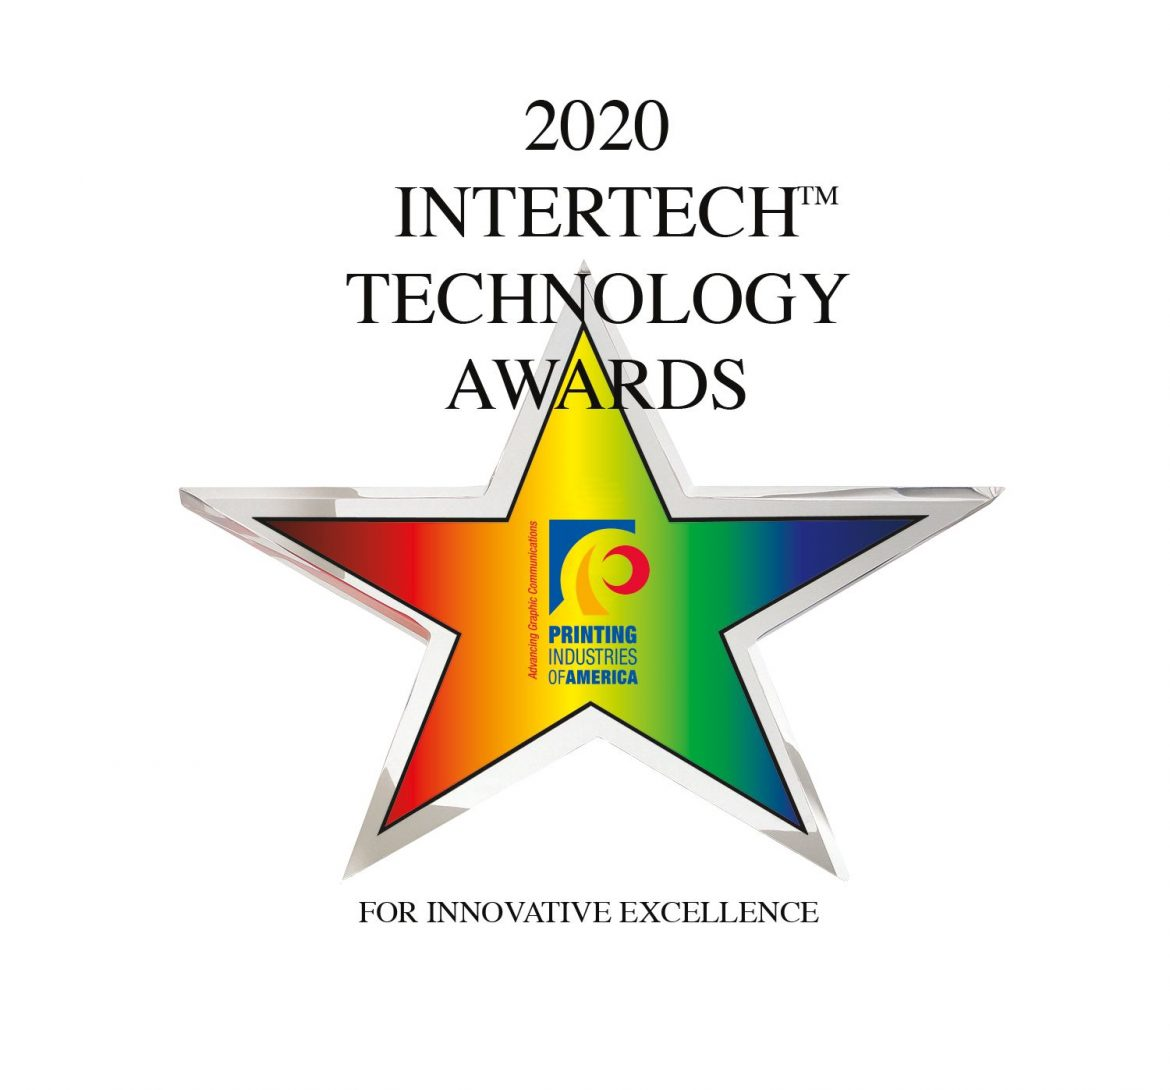 intertech awards 2020